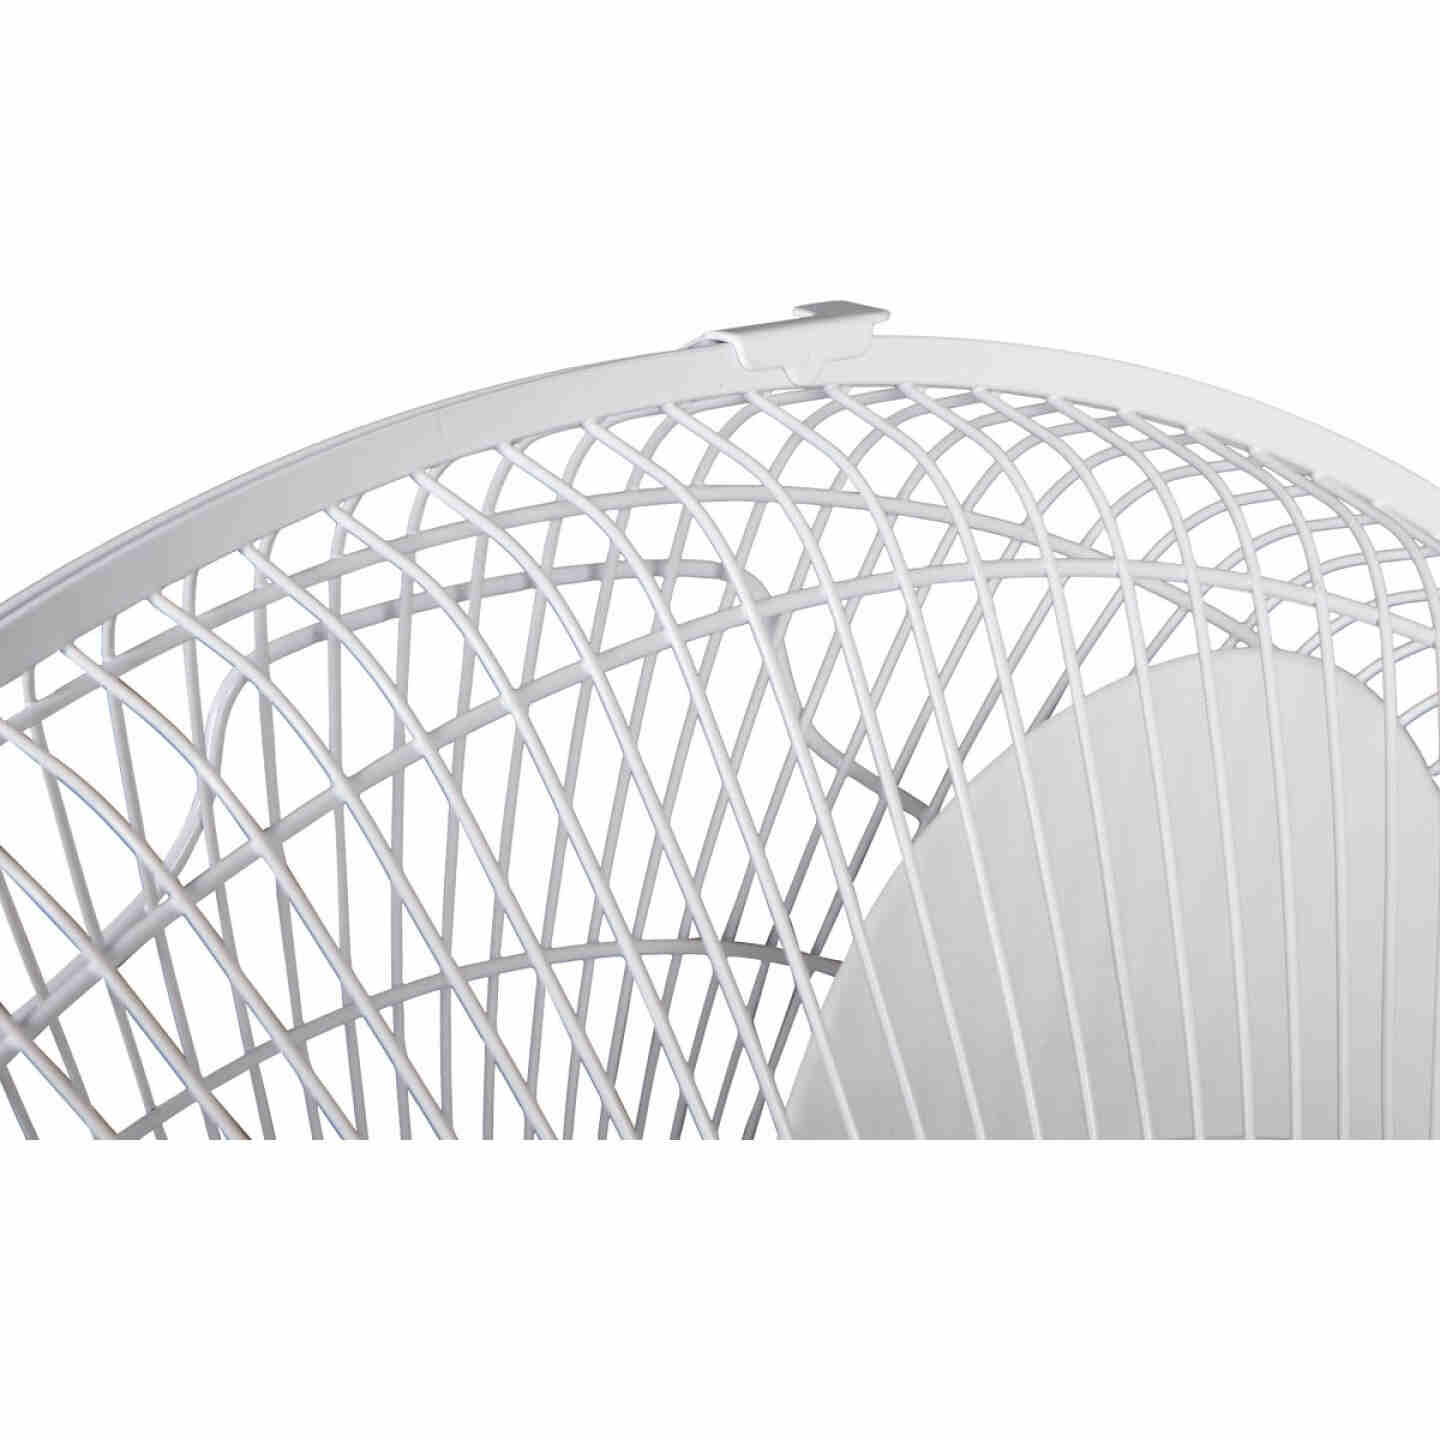 Best Comfort 16 In. 3-Speed Extends to 49 In. H. White Oscillating Pedestal Fan Image 4